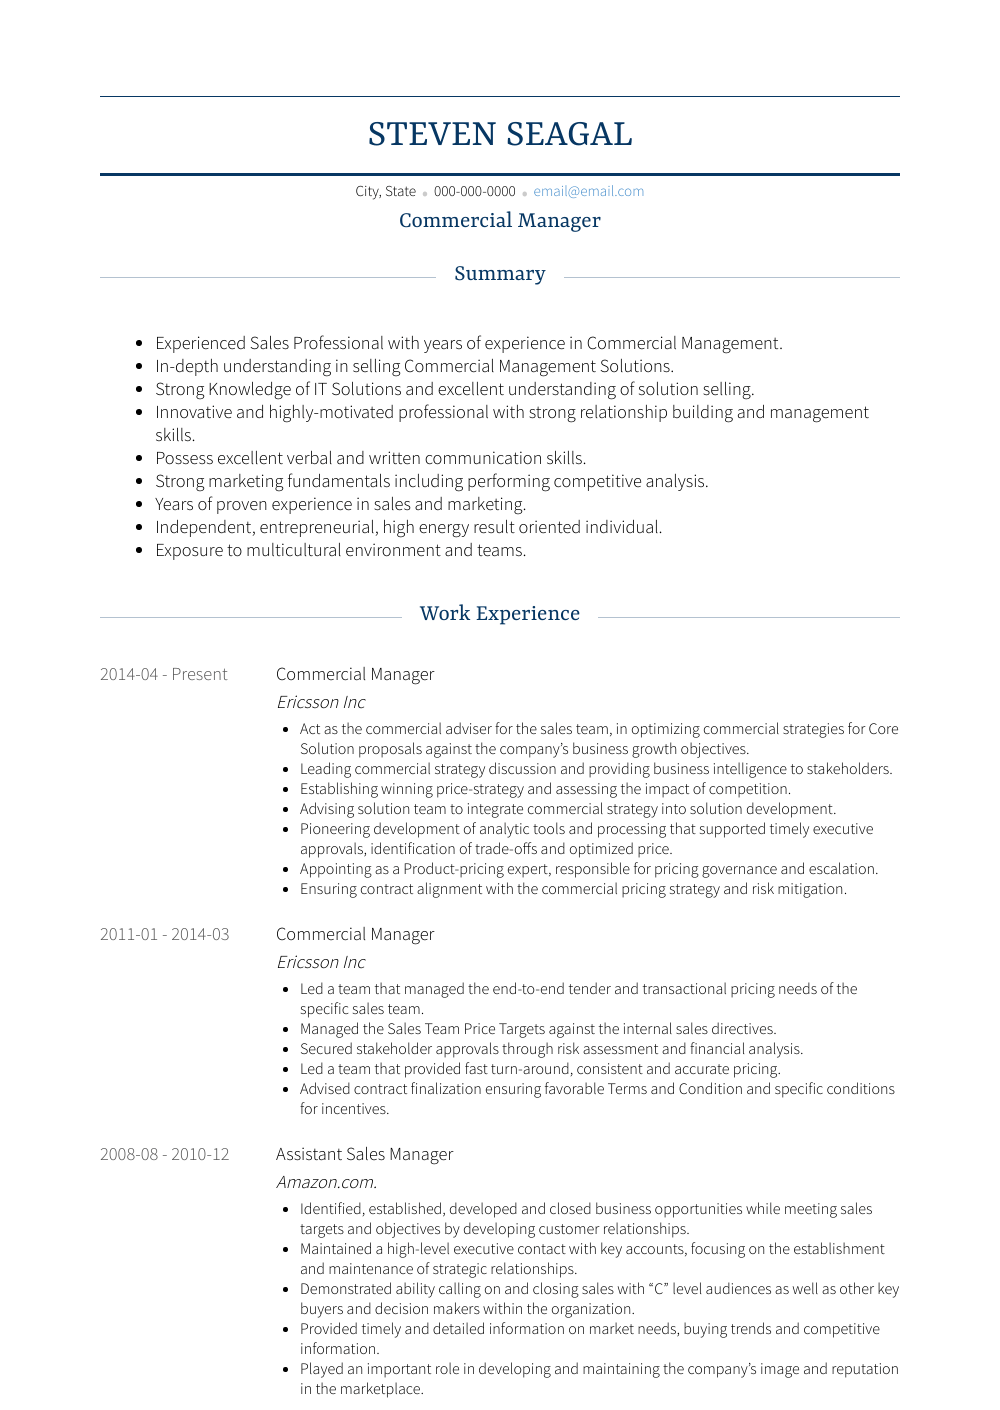 Commercial Manager Resume Sample and Template